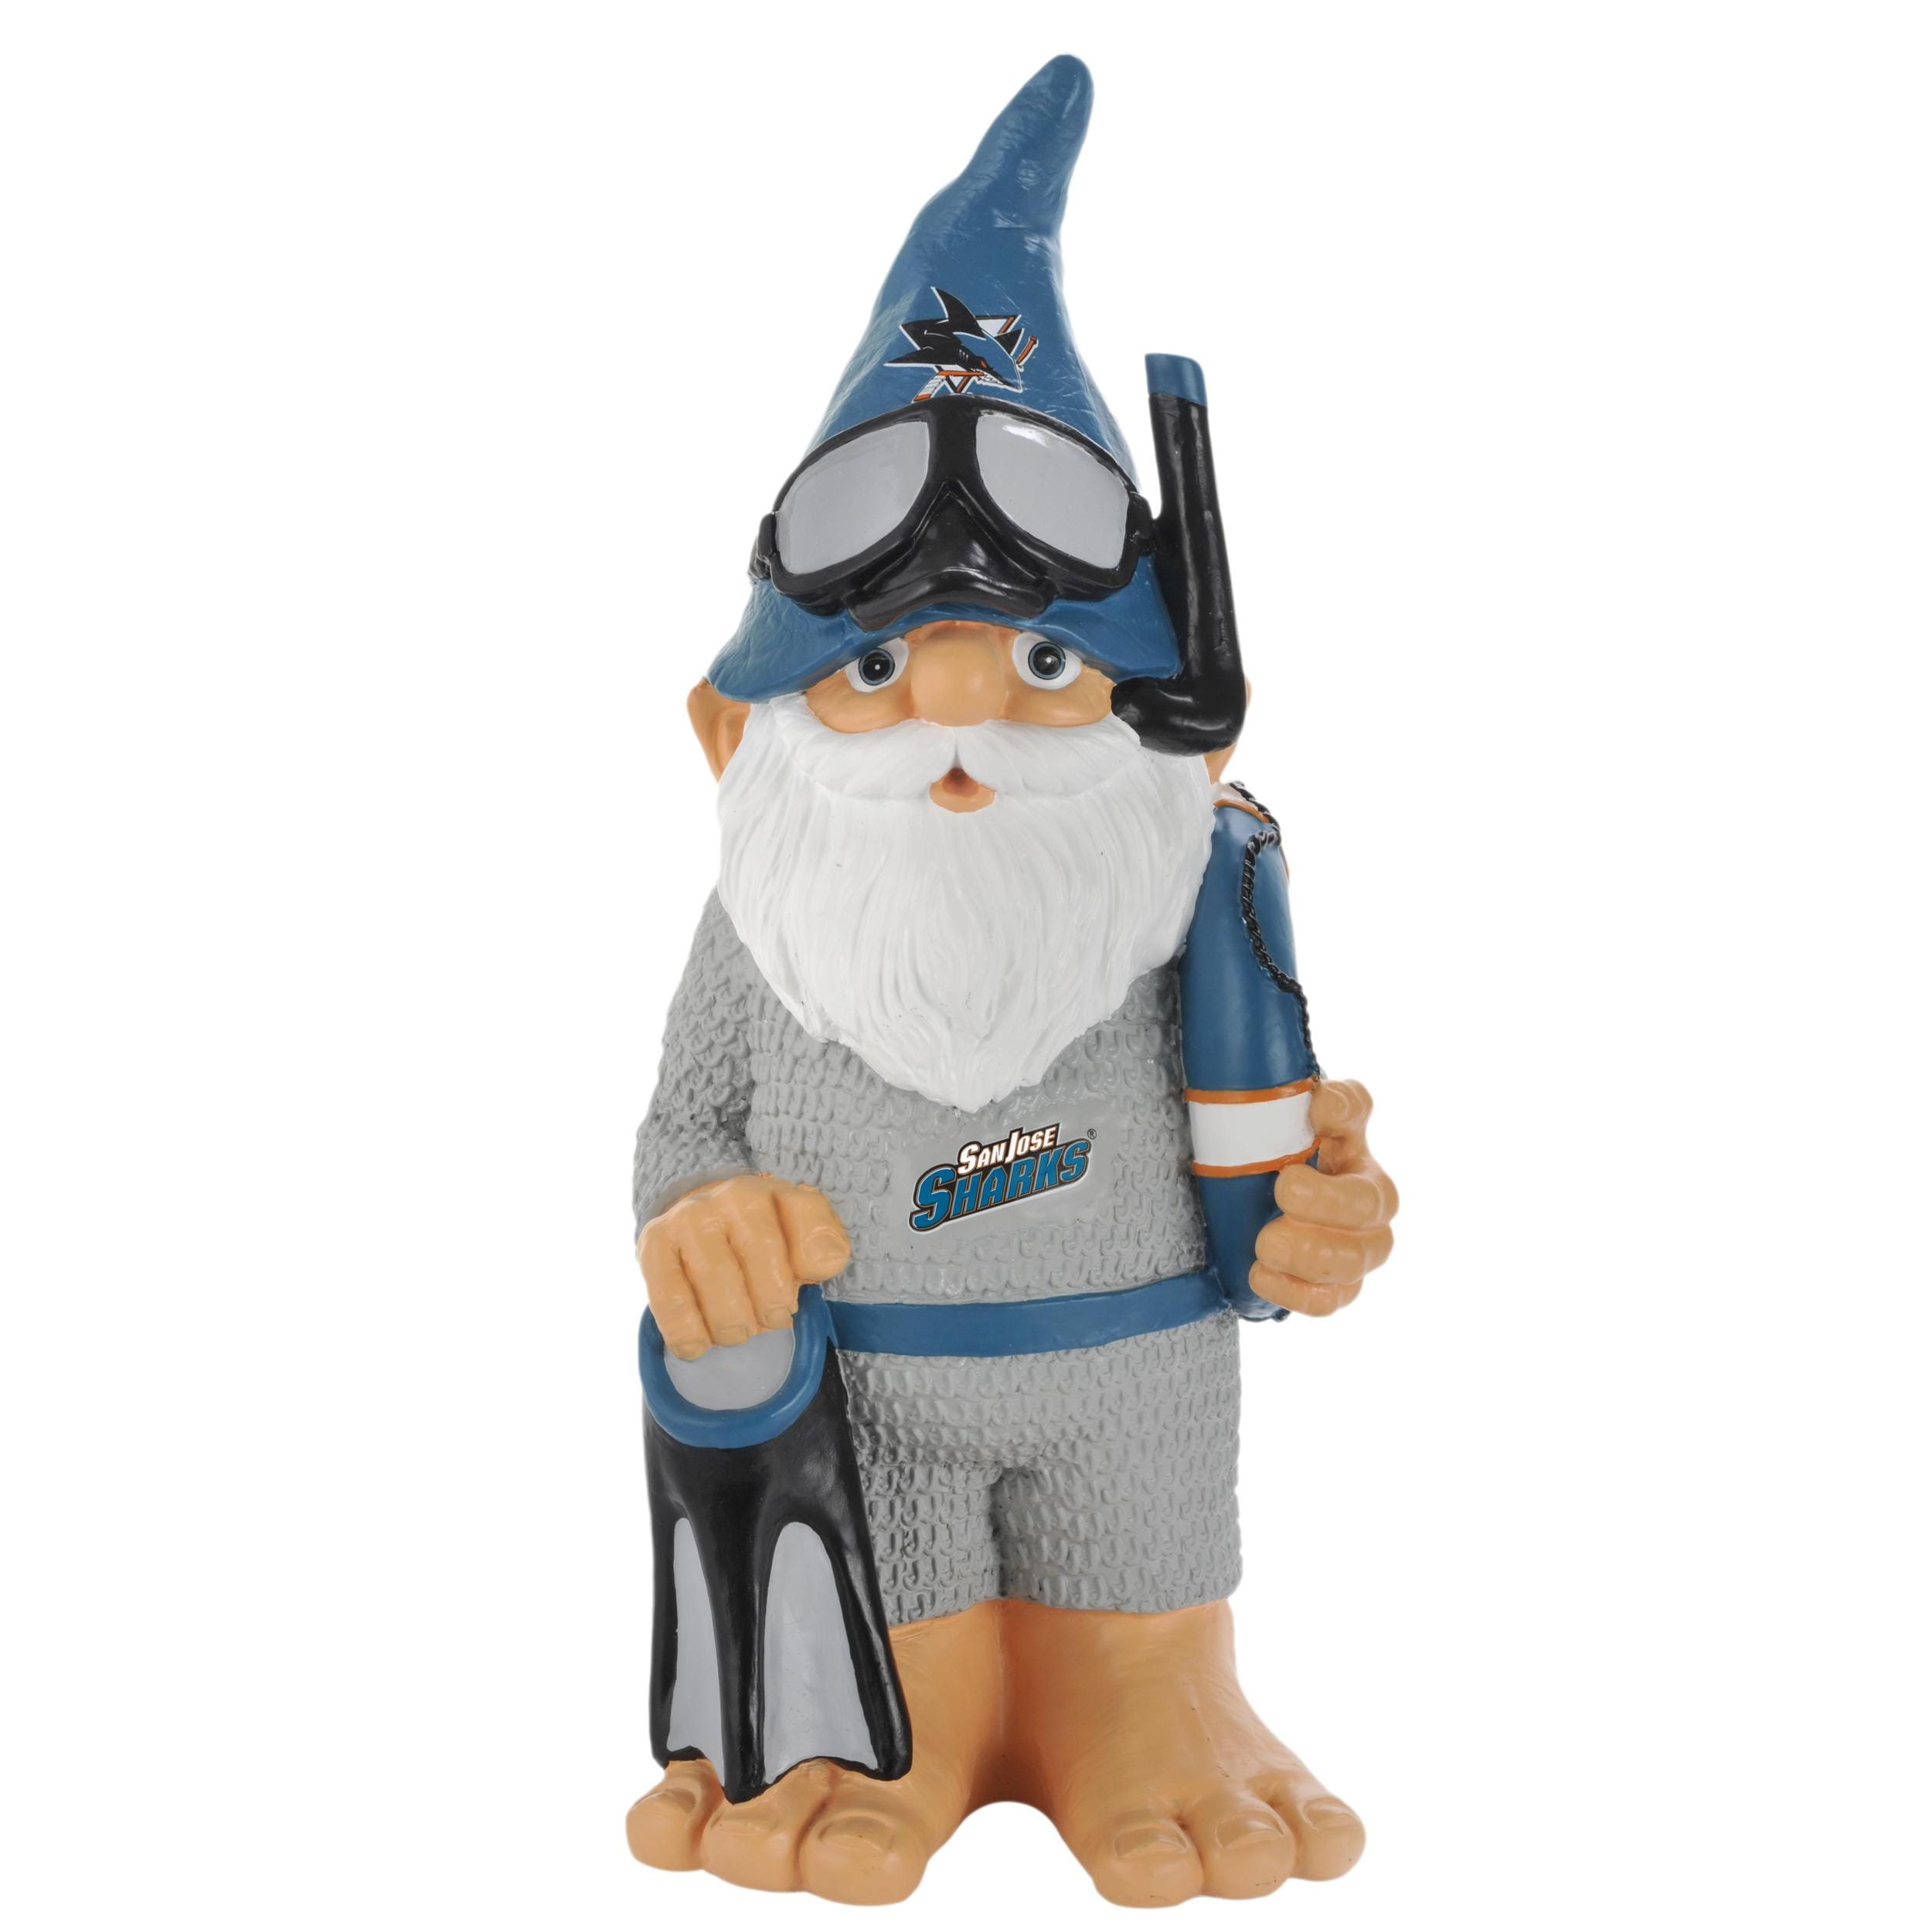 San Jose Sharks 11-inch Thematic Garden Gnome - Thumbnail 2